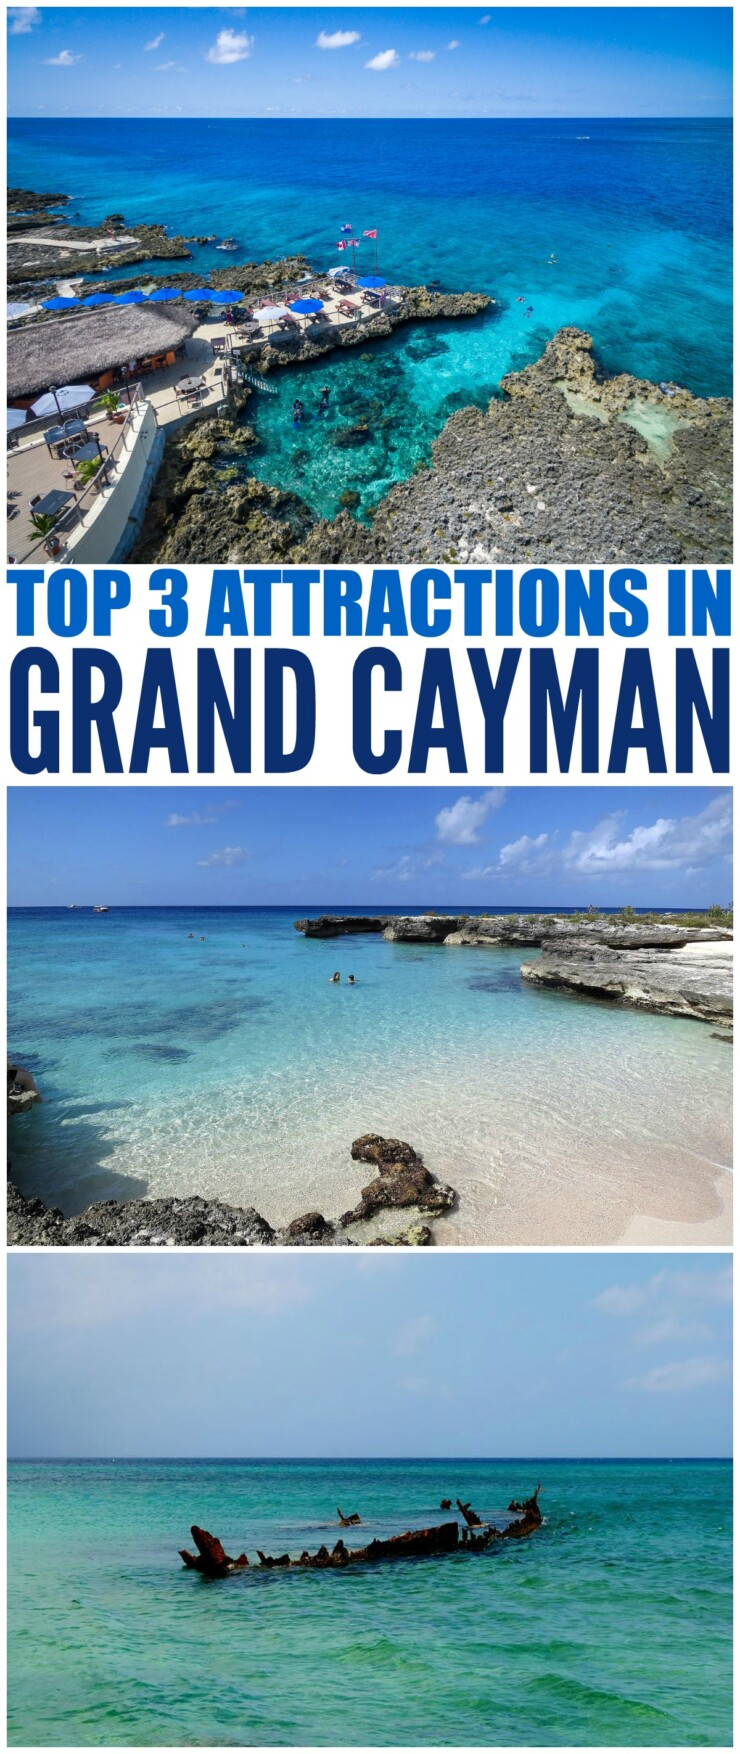 There are many things to do in Grand Cayman. However, in this article, Top 3 Things To Do In Grand Cayman, we will show the three most popular attractions. If you only have time to see a few spots, then these are three must do excursions you won't want to miss.